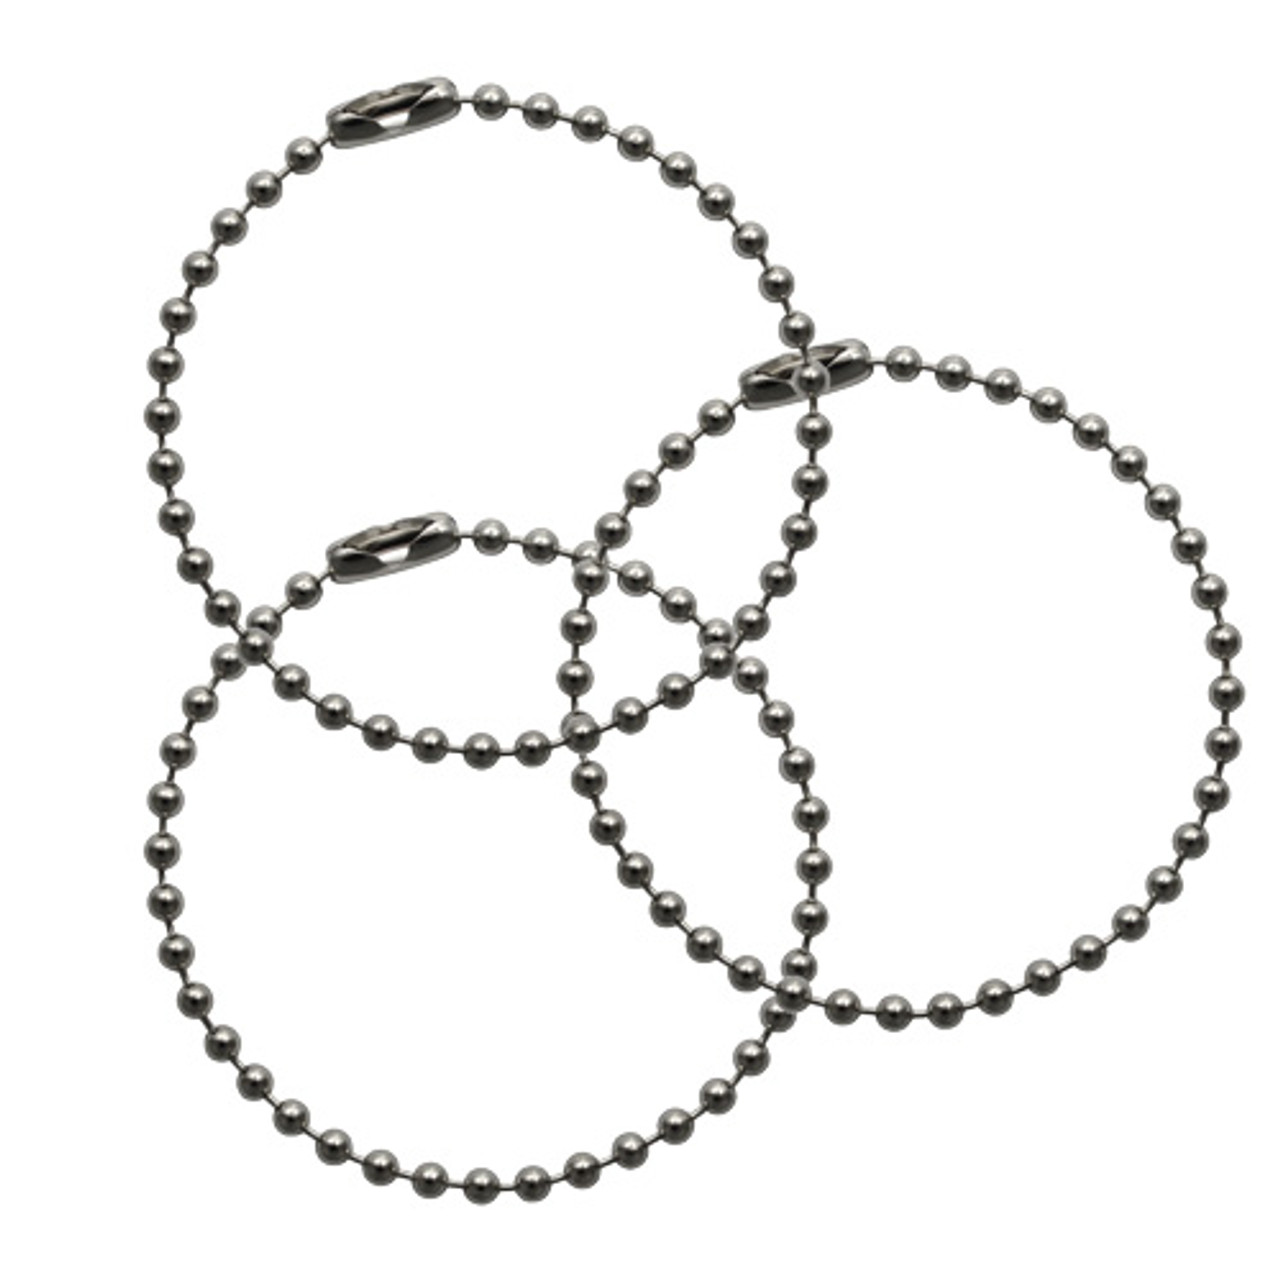 #3 4.5 inch stainless steel ball chain keychains. The chains is 2.4mm diameter. Great value when purchased in bulk at factory direct prices. No company seal.